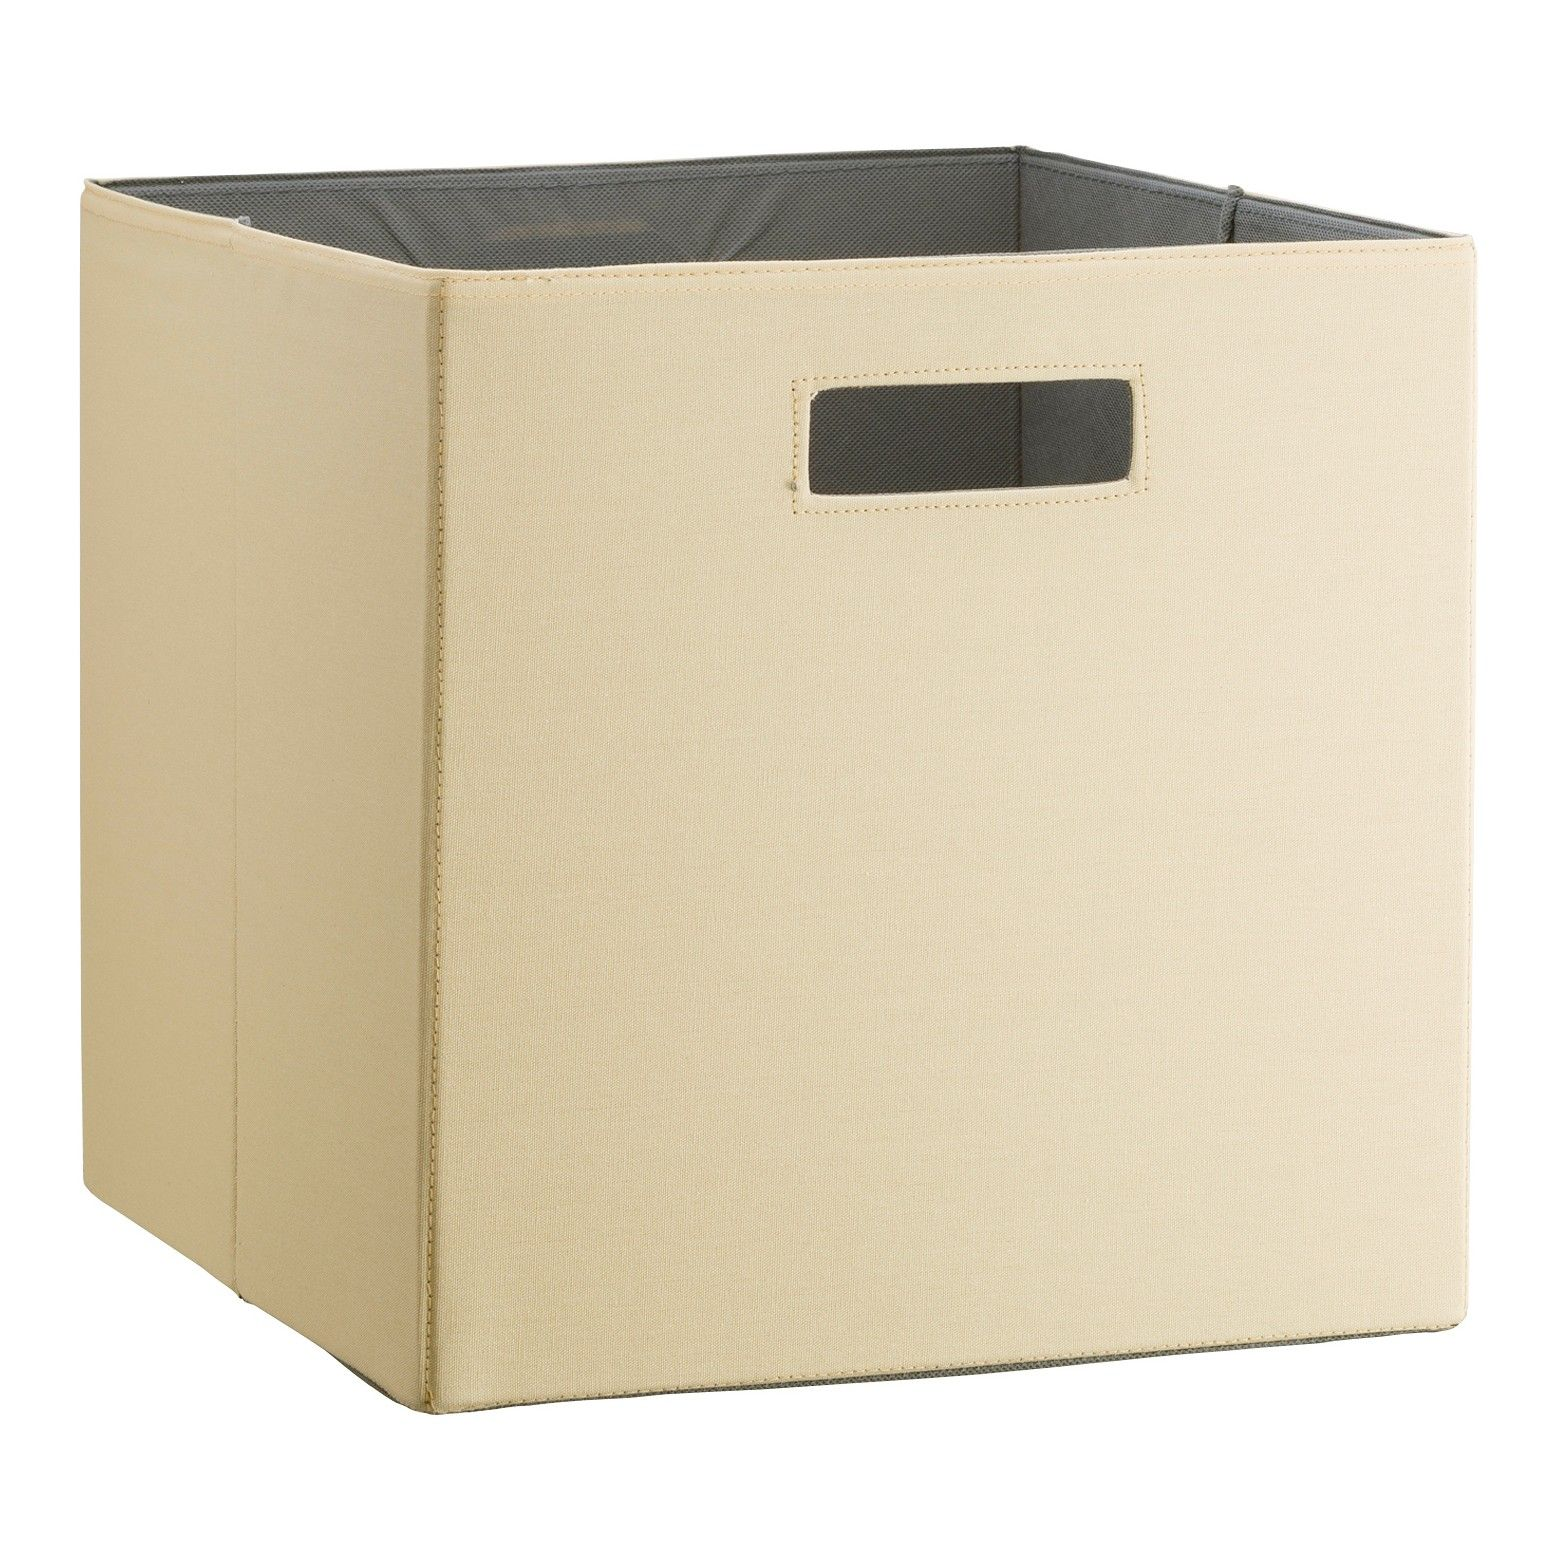 Charmant Bring Home Endless Storage Possibilities With This 13 Inch Fabric Cube  Storage Bin From Threshold.